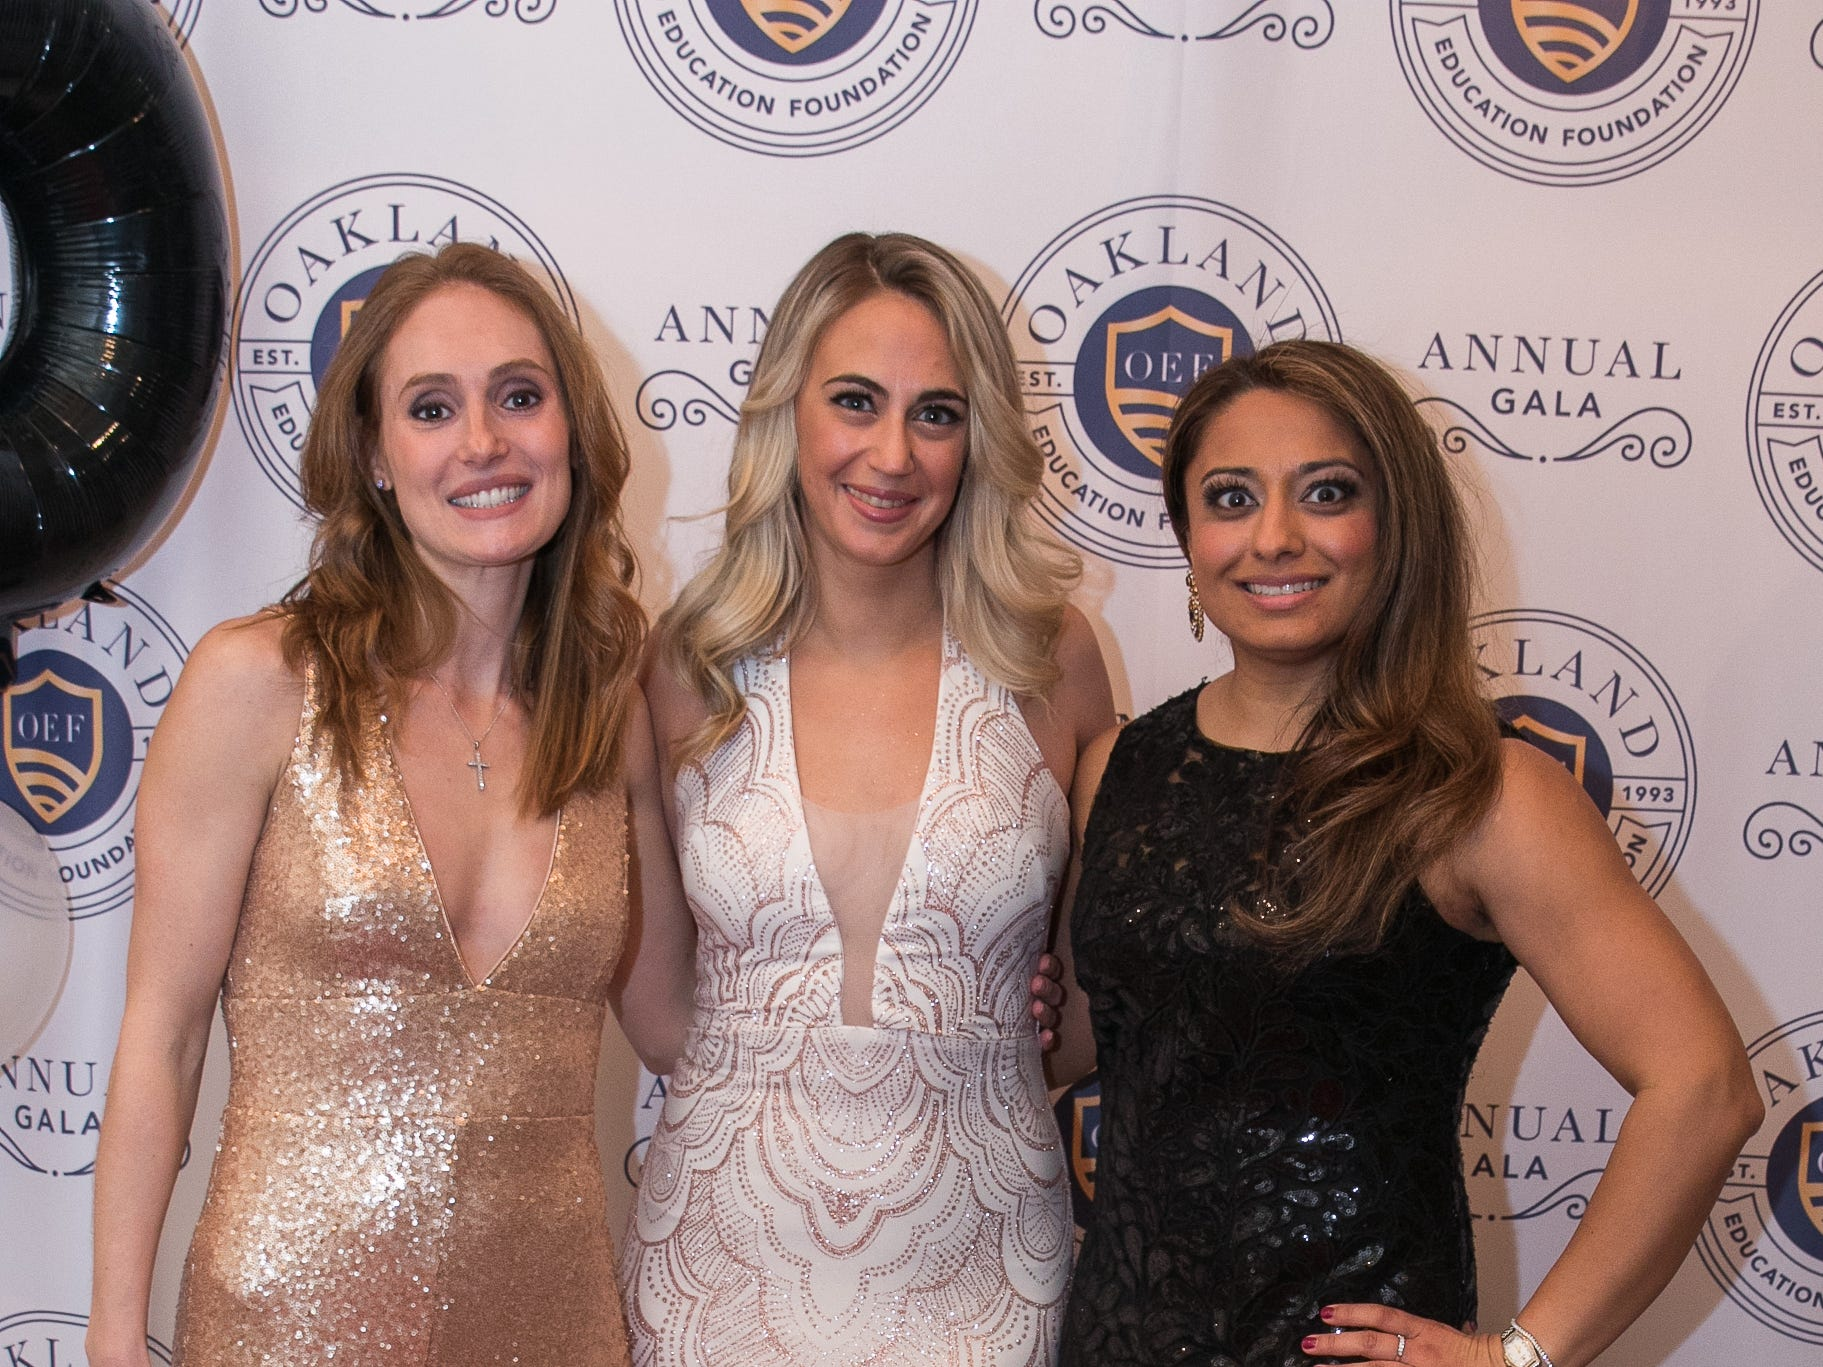 Jacki Wall, Katrina Larsen, Mina Patel. The Oakland Education Foundation held their 25th Anniversary Casino Night Gala at Preakness Hills Country Club in Wayne. 03/16/2019